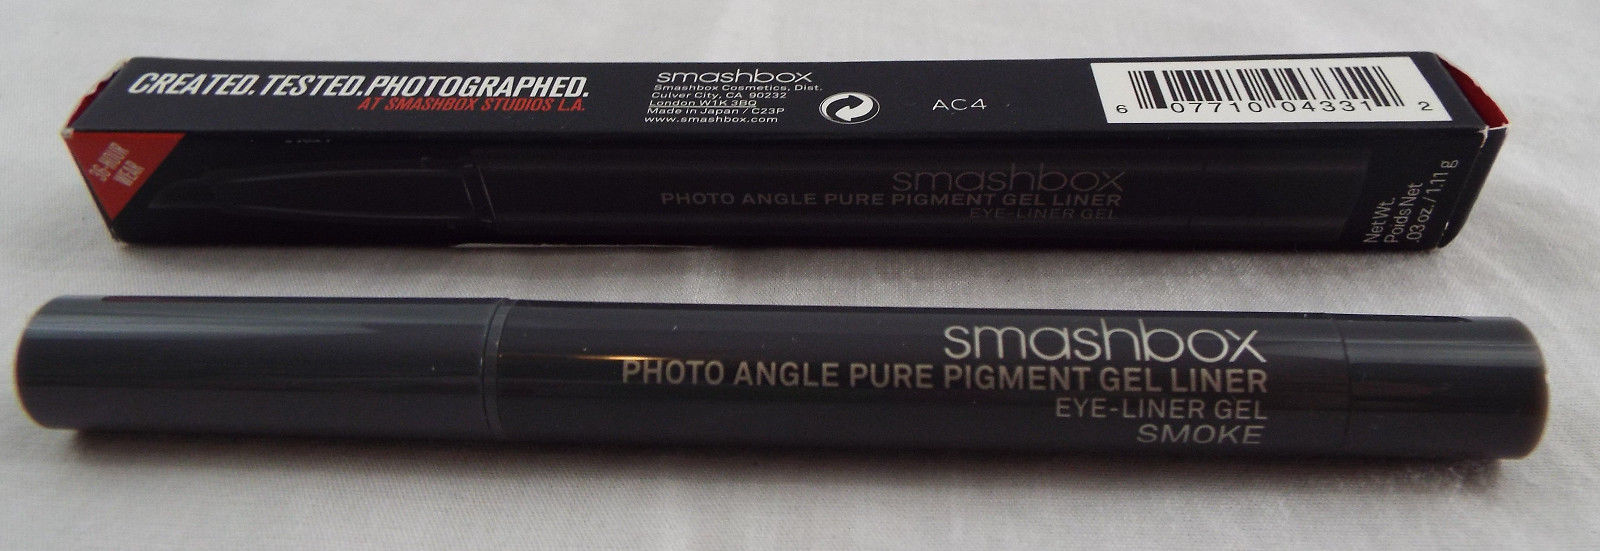 Smashbox Photo Angle Pure Pigment Gel Liner And 50 Similar Items